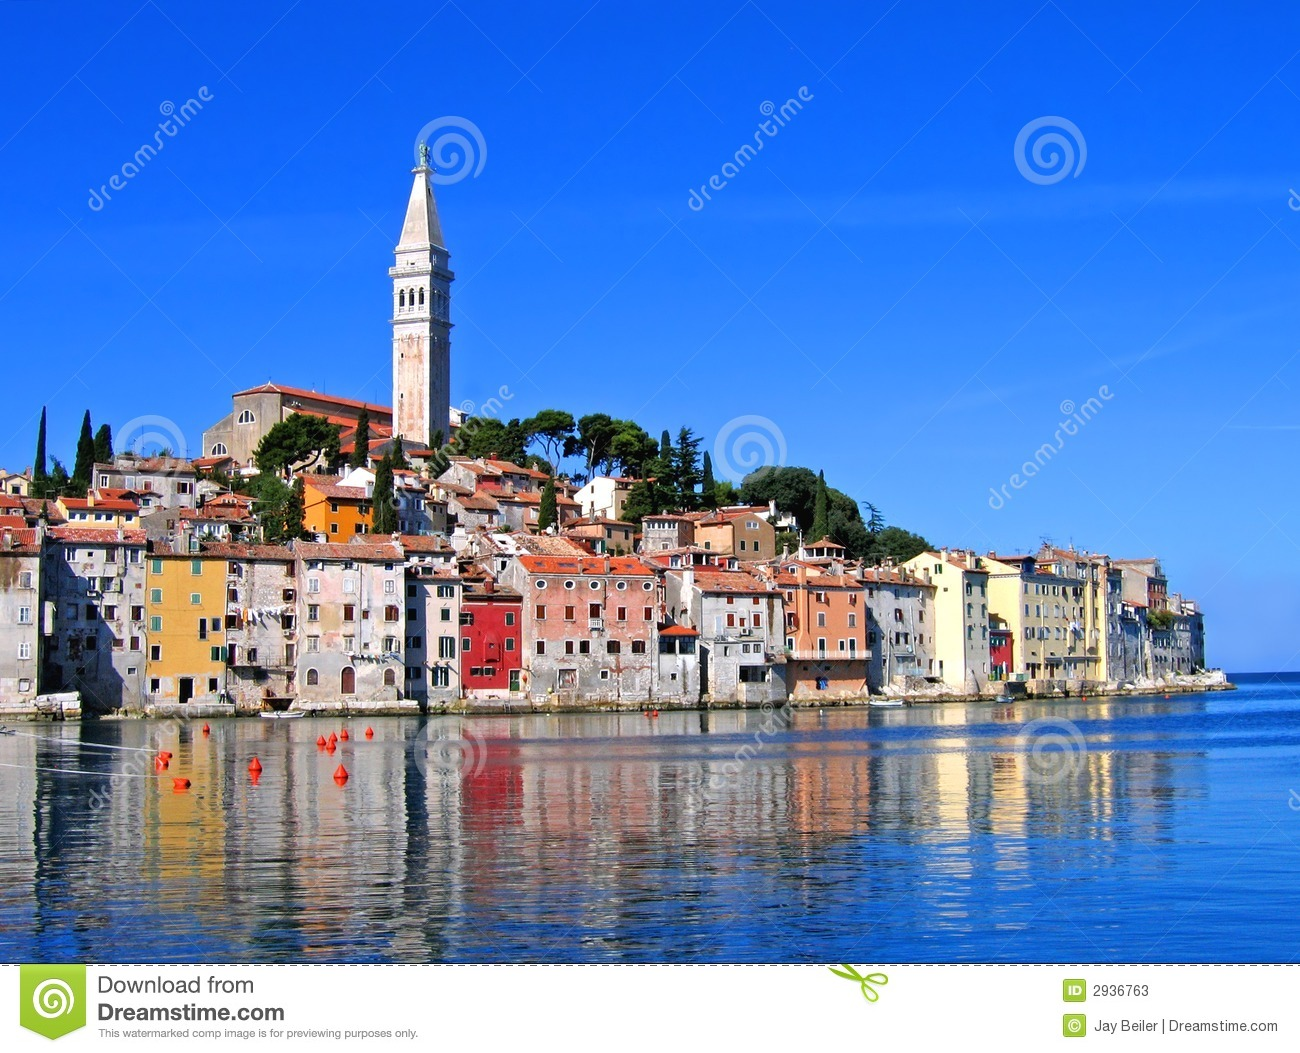 Morning In Rovinj, Croatia Stock Photos - Image: 2936763